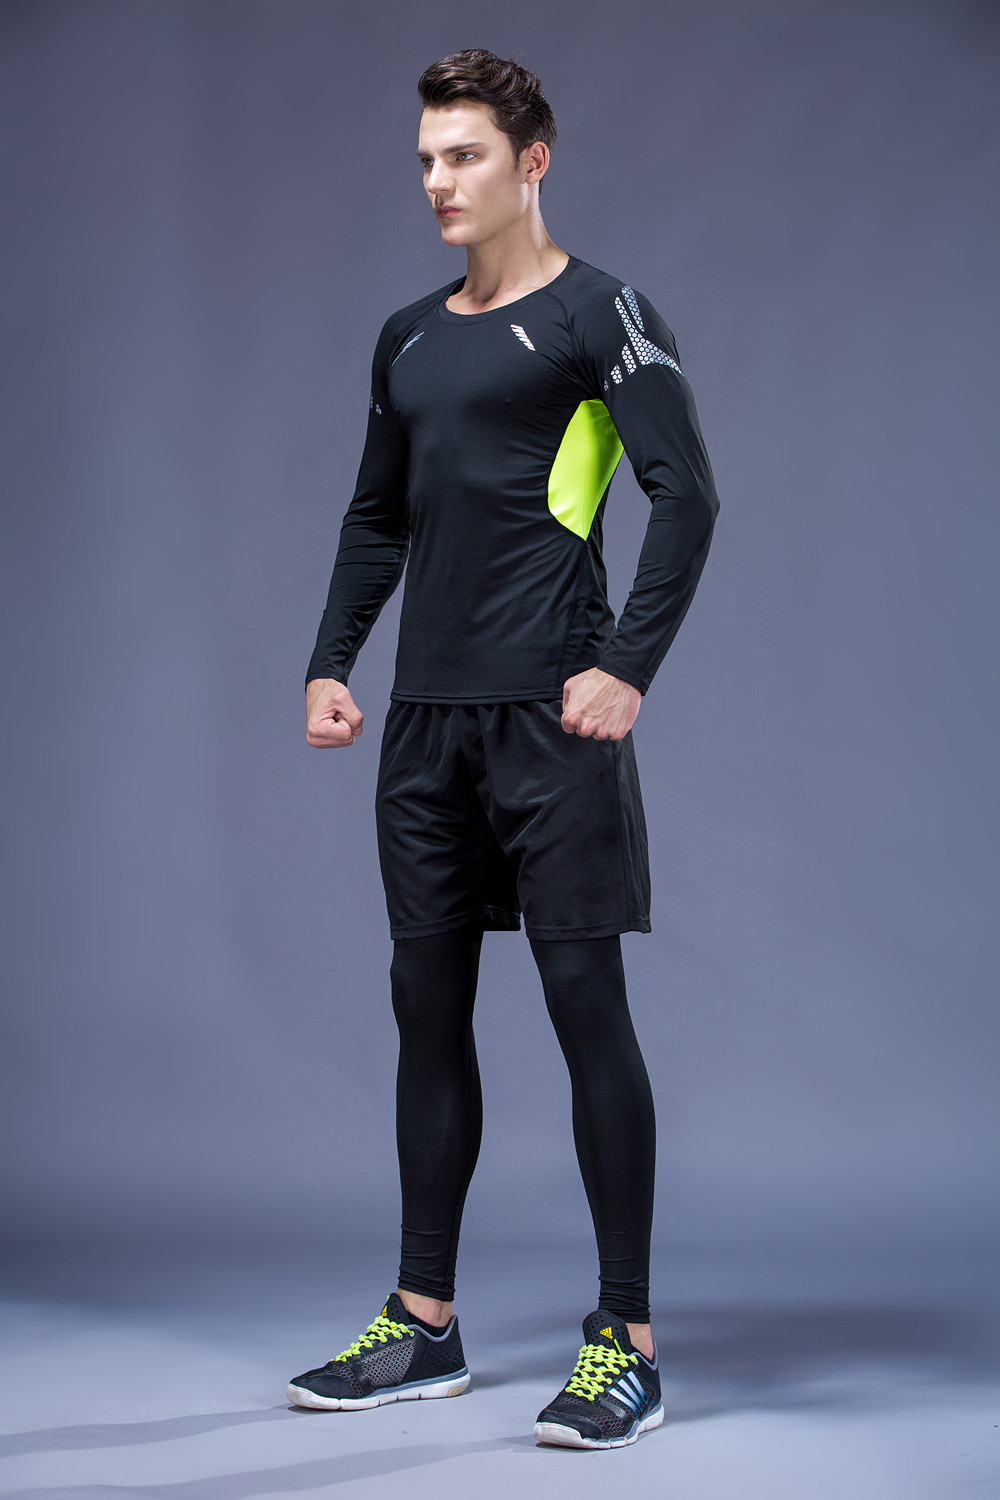 Foto on men from the right 5 pcs compressions clothes for gym. Men's 5 pcs compression tracksuit sports